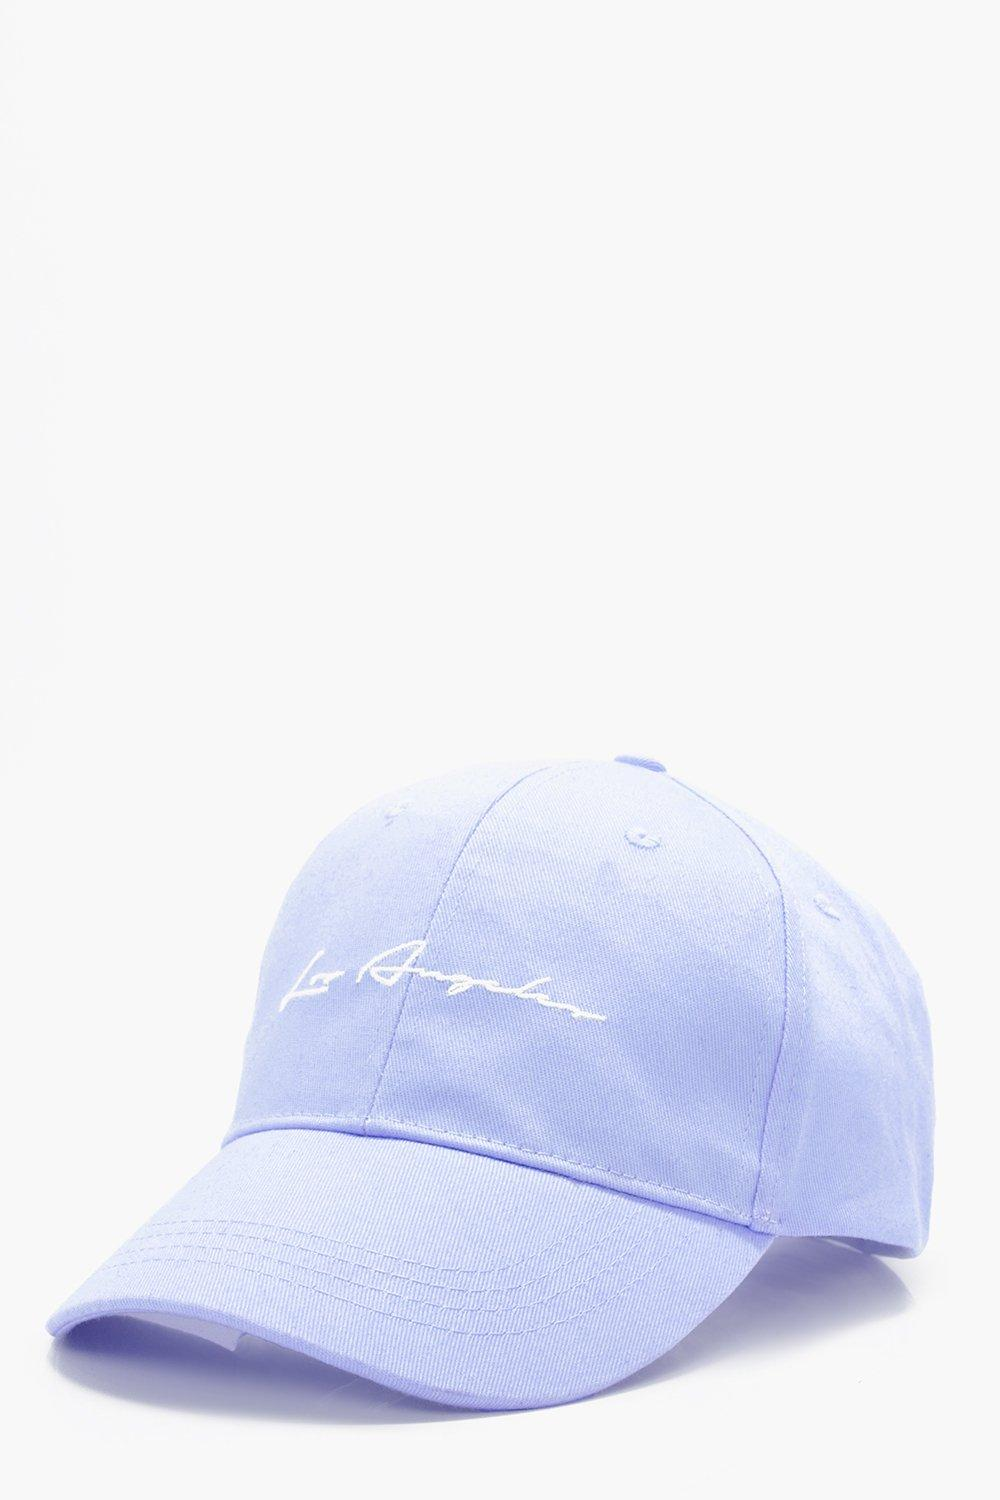 Angeles Signature Embroidered Cap - blue - Los Ang